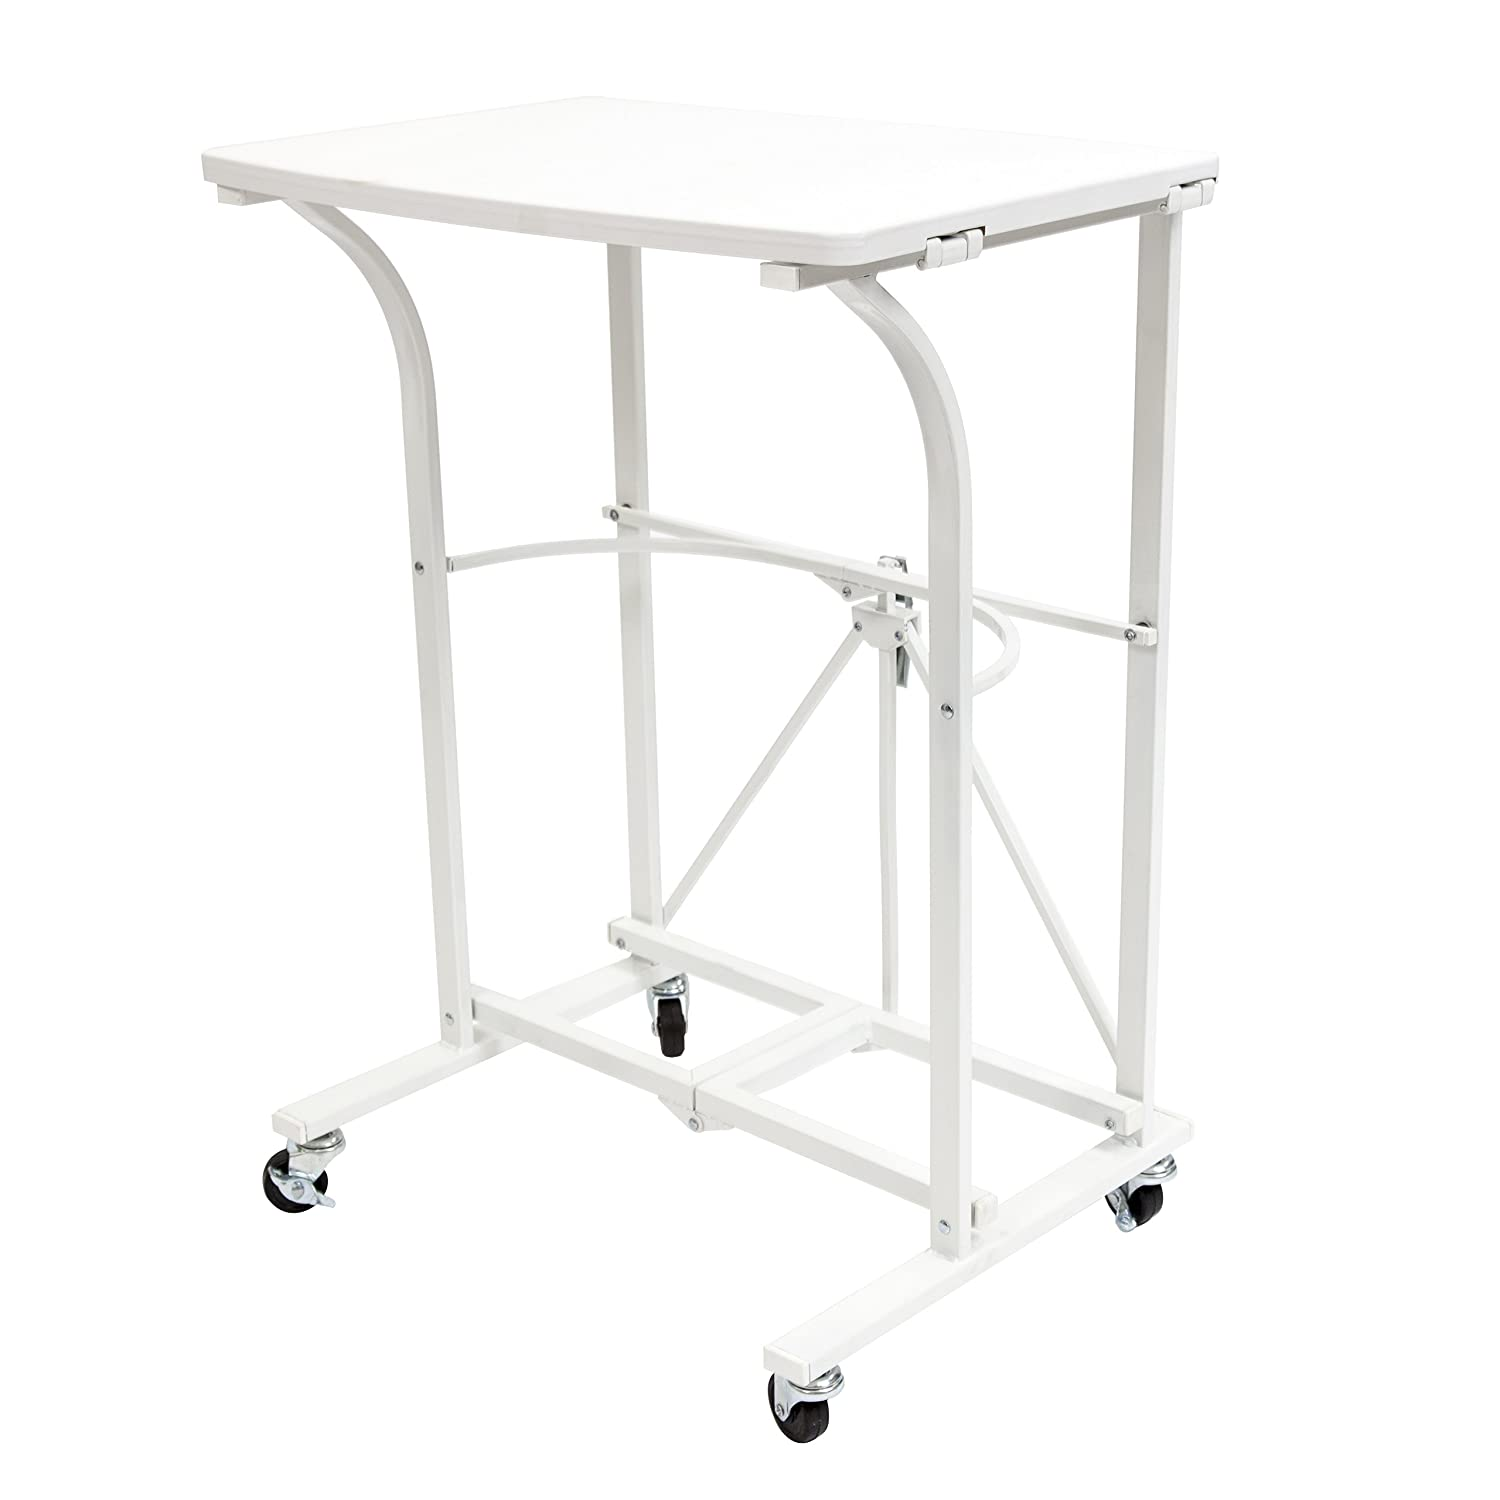 Origami Group RDP-01-WHITE Steel Frame 4 Locking Wheel Foldable Trolley Table